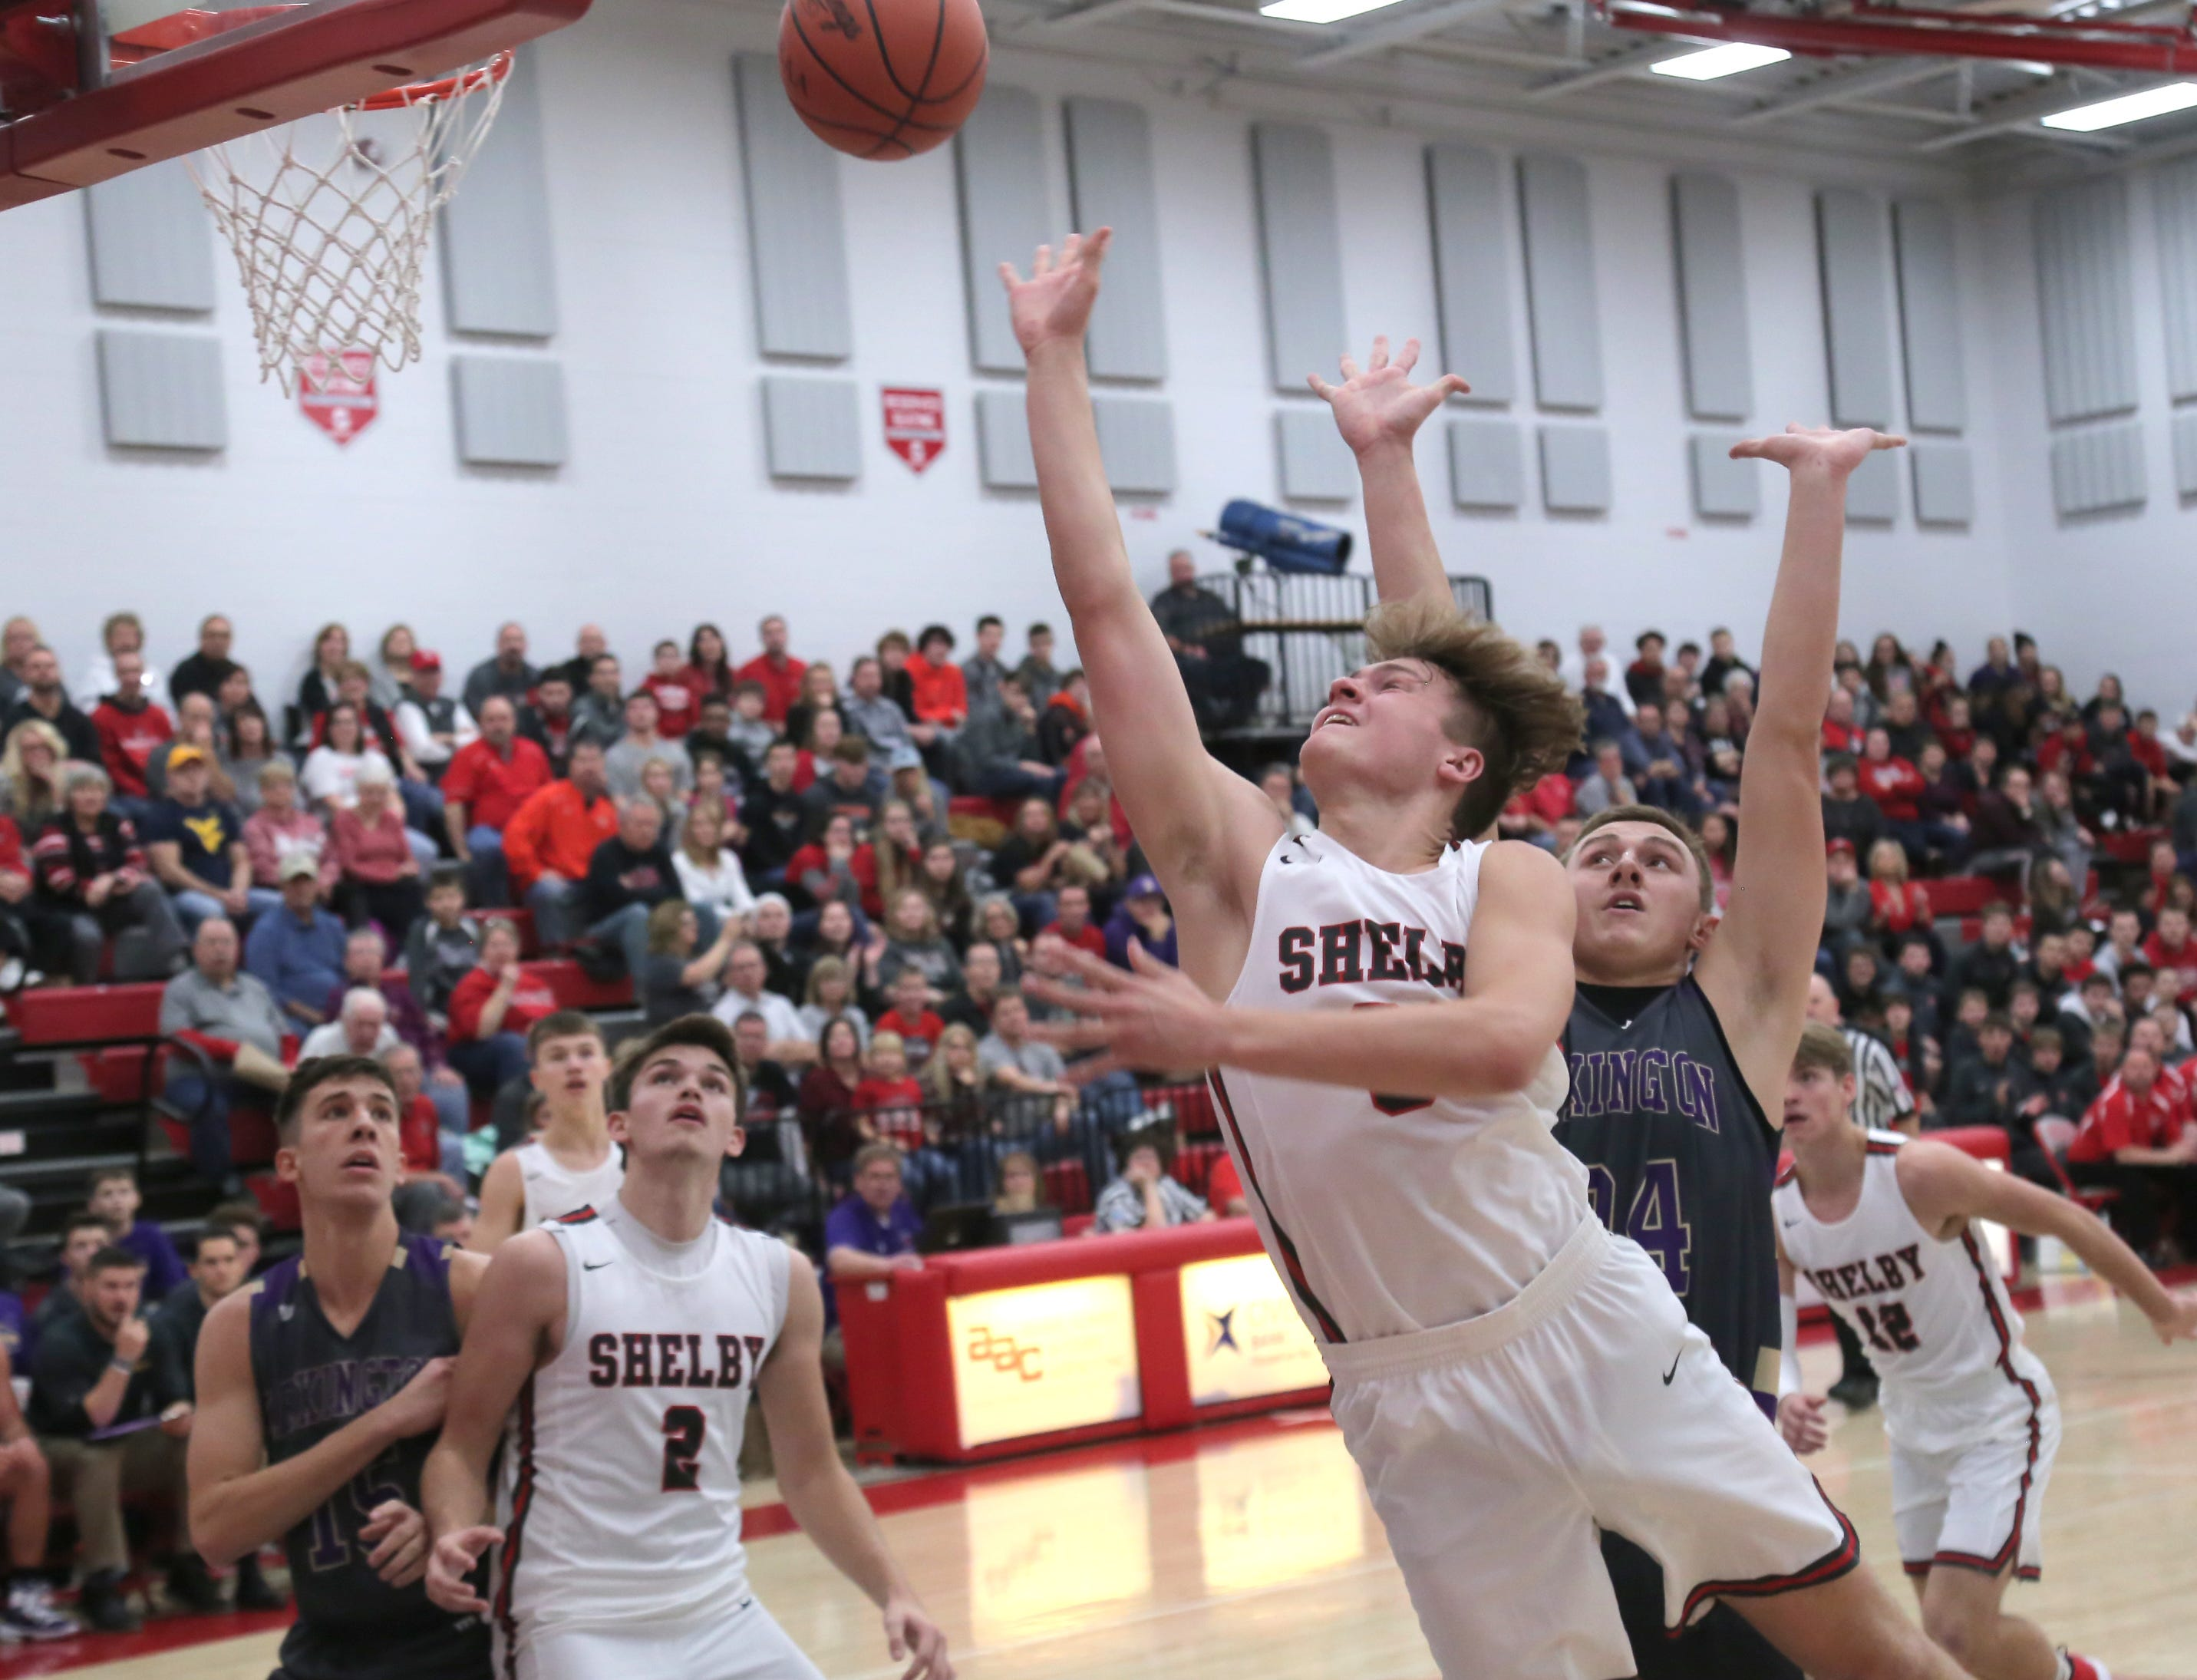 Shelby's Uriah Schwemley makes a jump shot while playing against Lexington on Saturday.